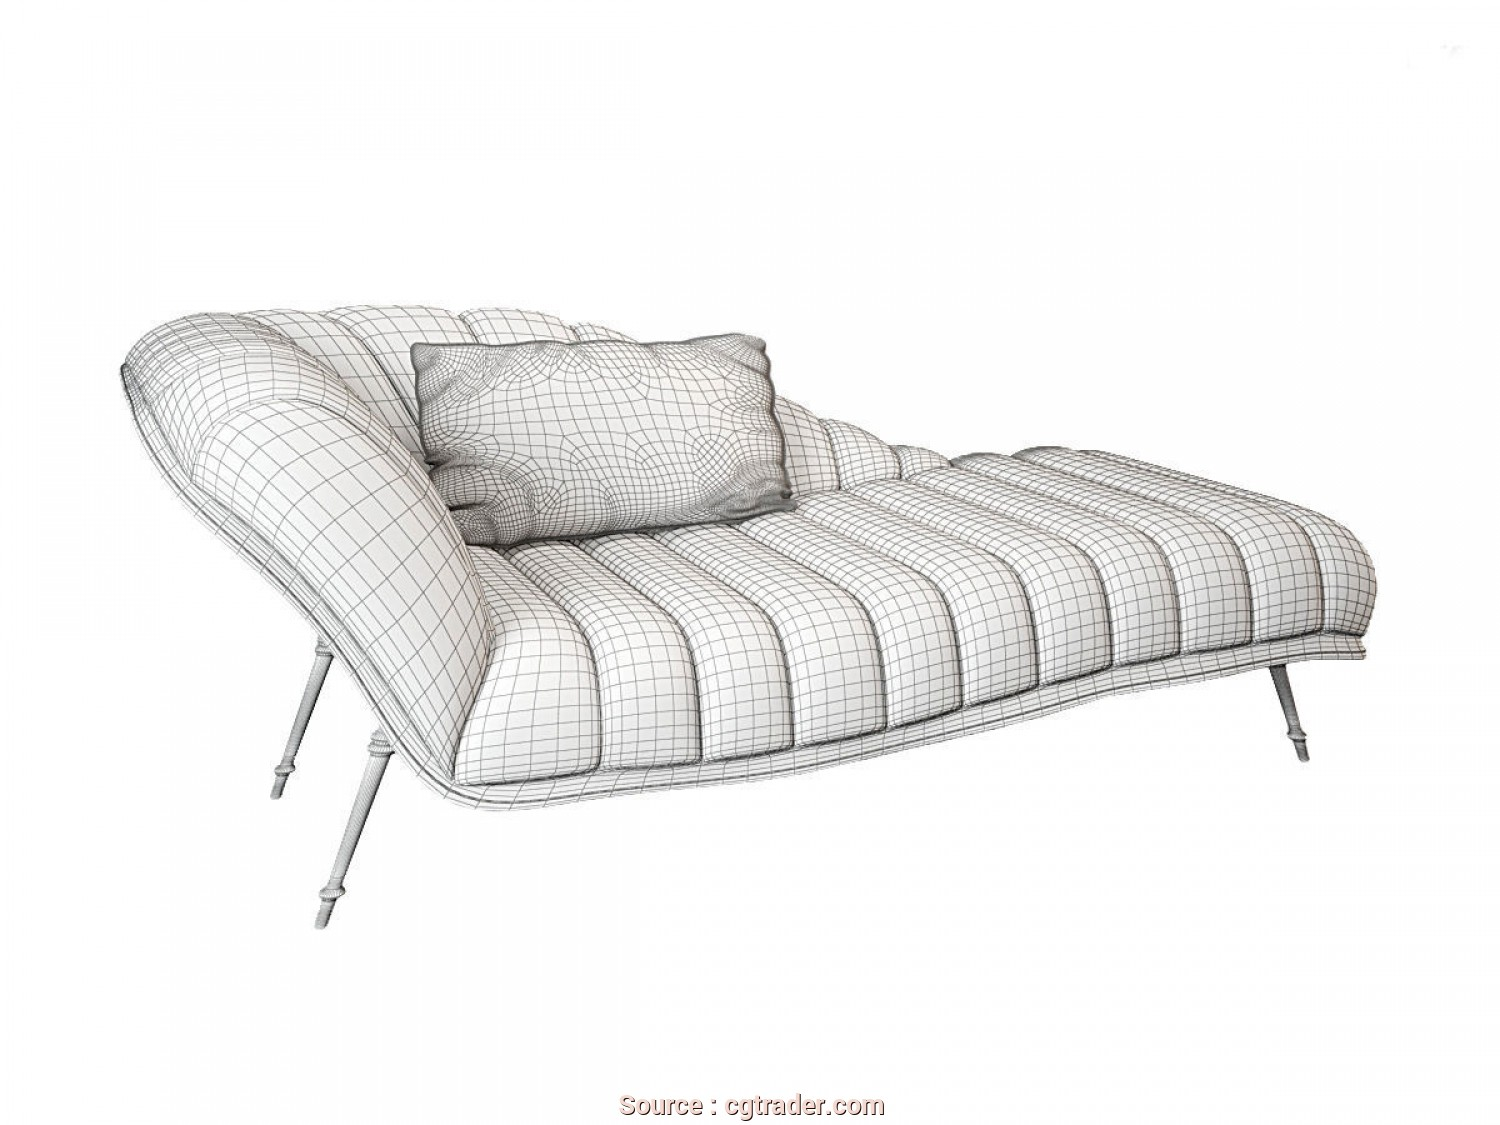 Chaise Longue, 3D, Bella ... Visionnaire Vanity Fair 3D Model, Obj, Dxf, Mat 8